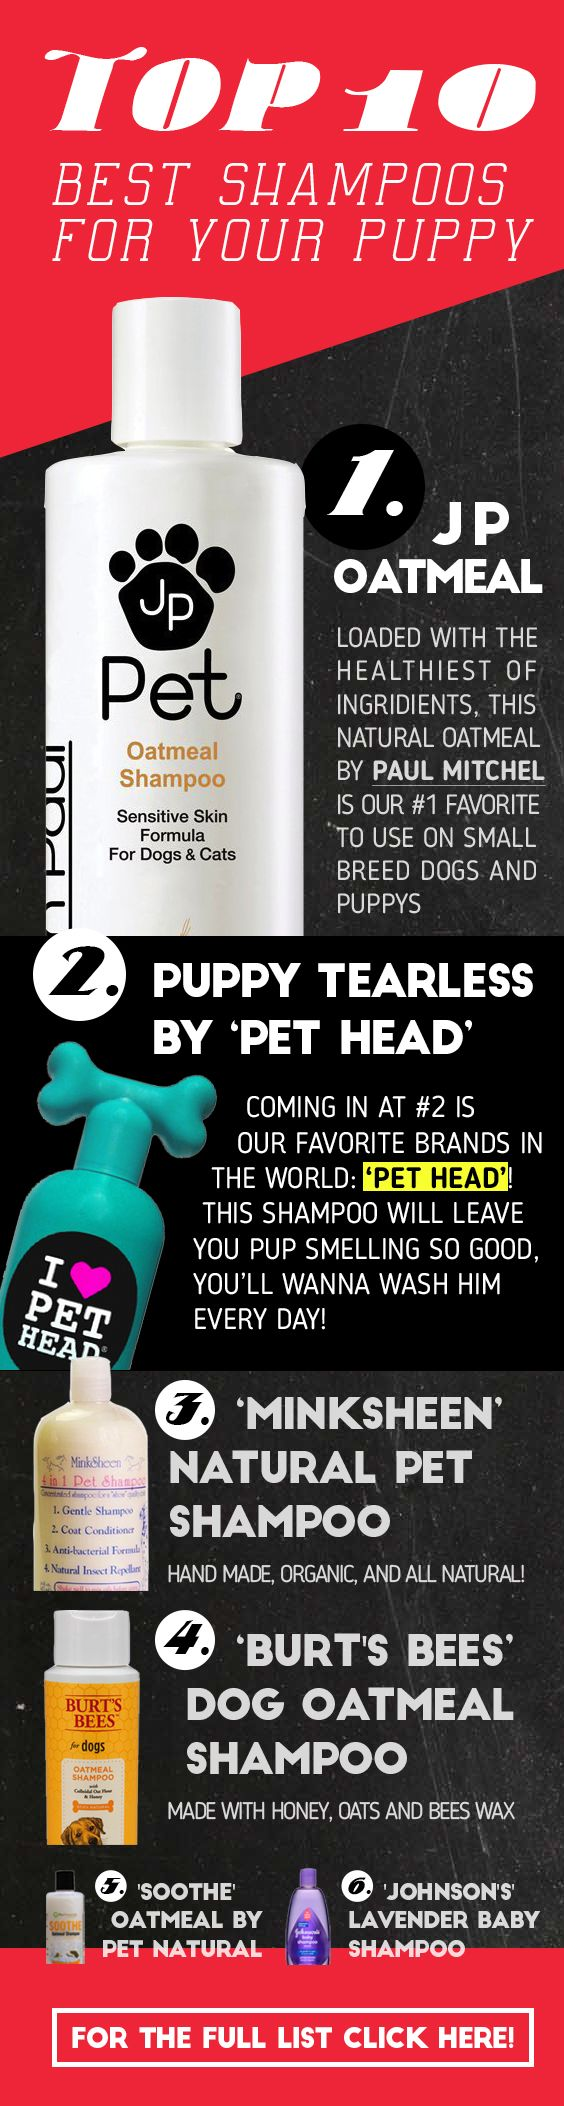 Looking For The Best Shampoo For Your Morkie / Yorkie / Maltese Or Any Other Small Puppy Breed? Here Are The Top 10 Best Shampoos For Your Dog! | The Morkie Guide